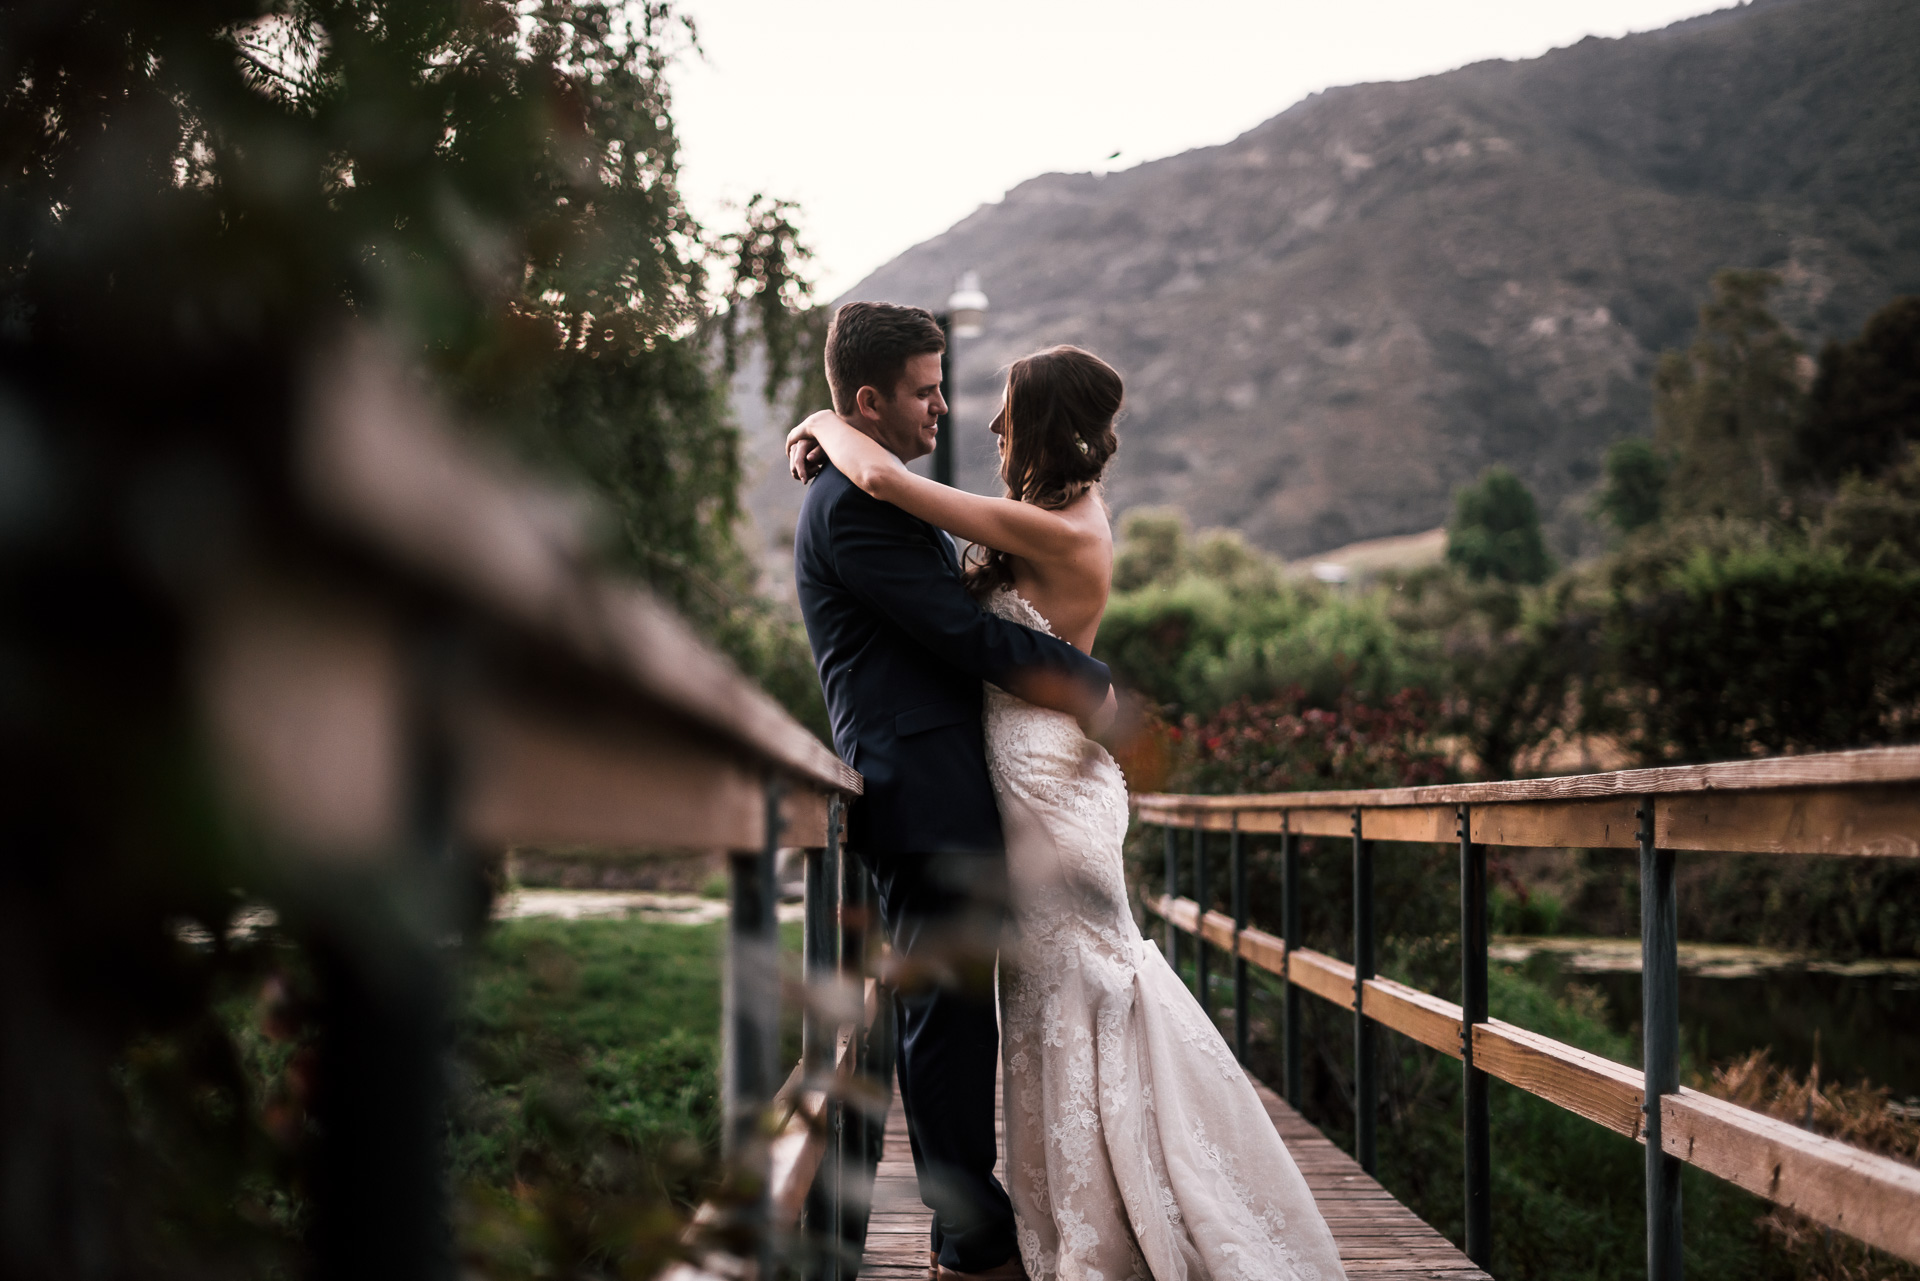 newly weds hold eachother close on rustic bridge at the secret garden located at the Historic Parish ranch in Oak Glen California